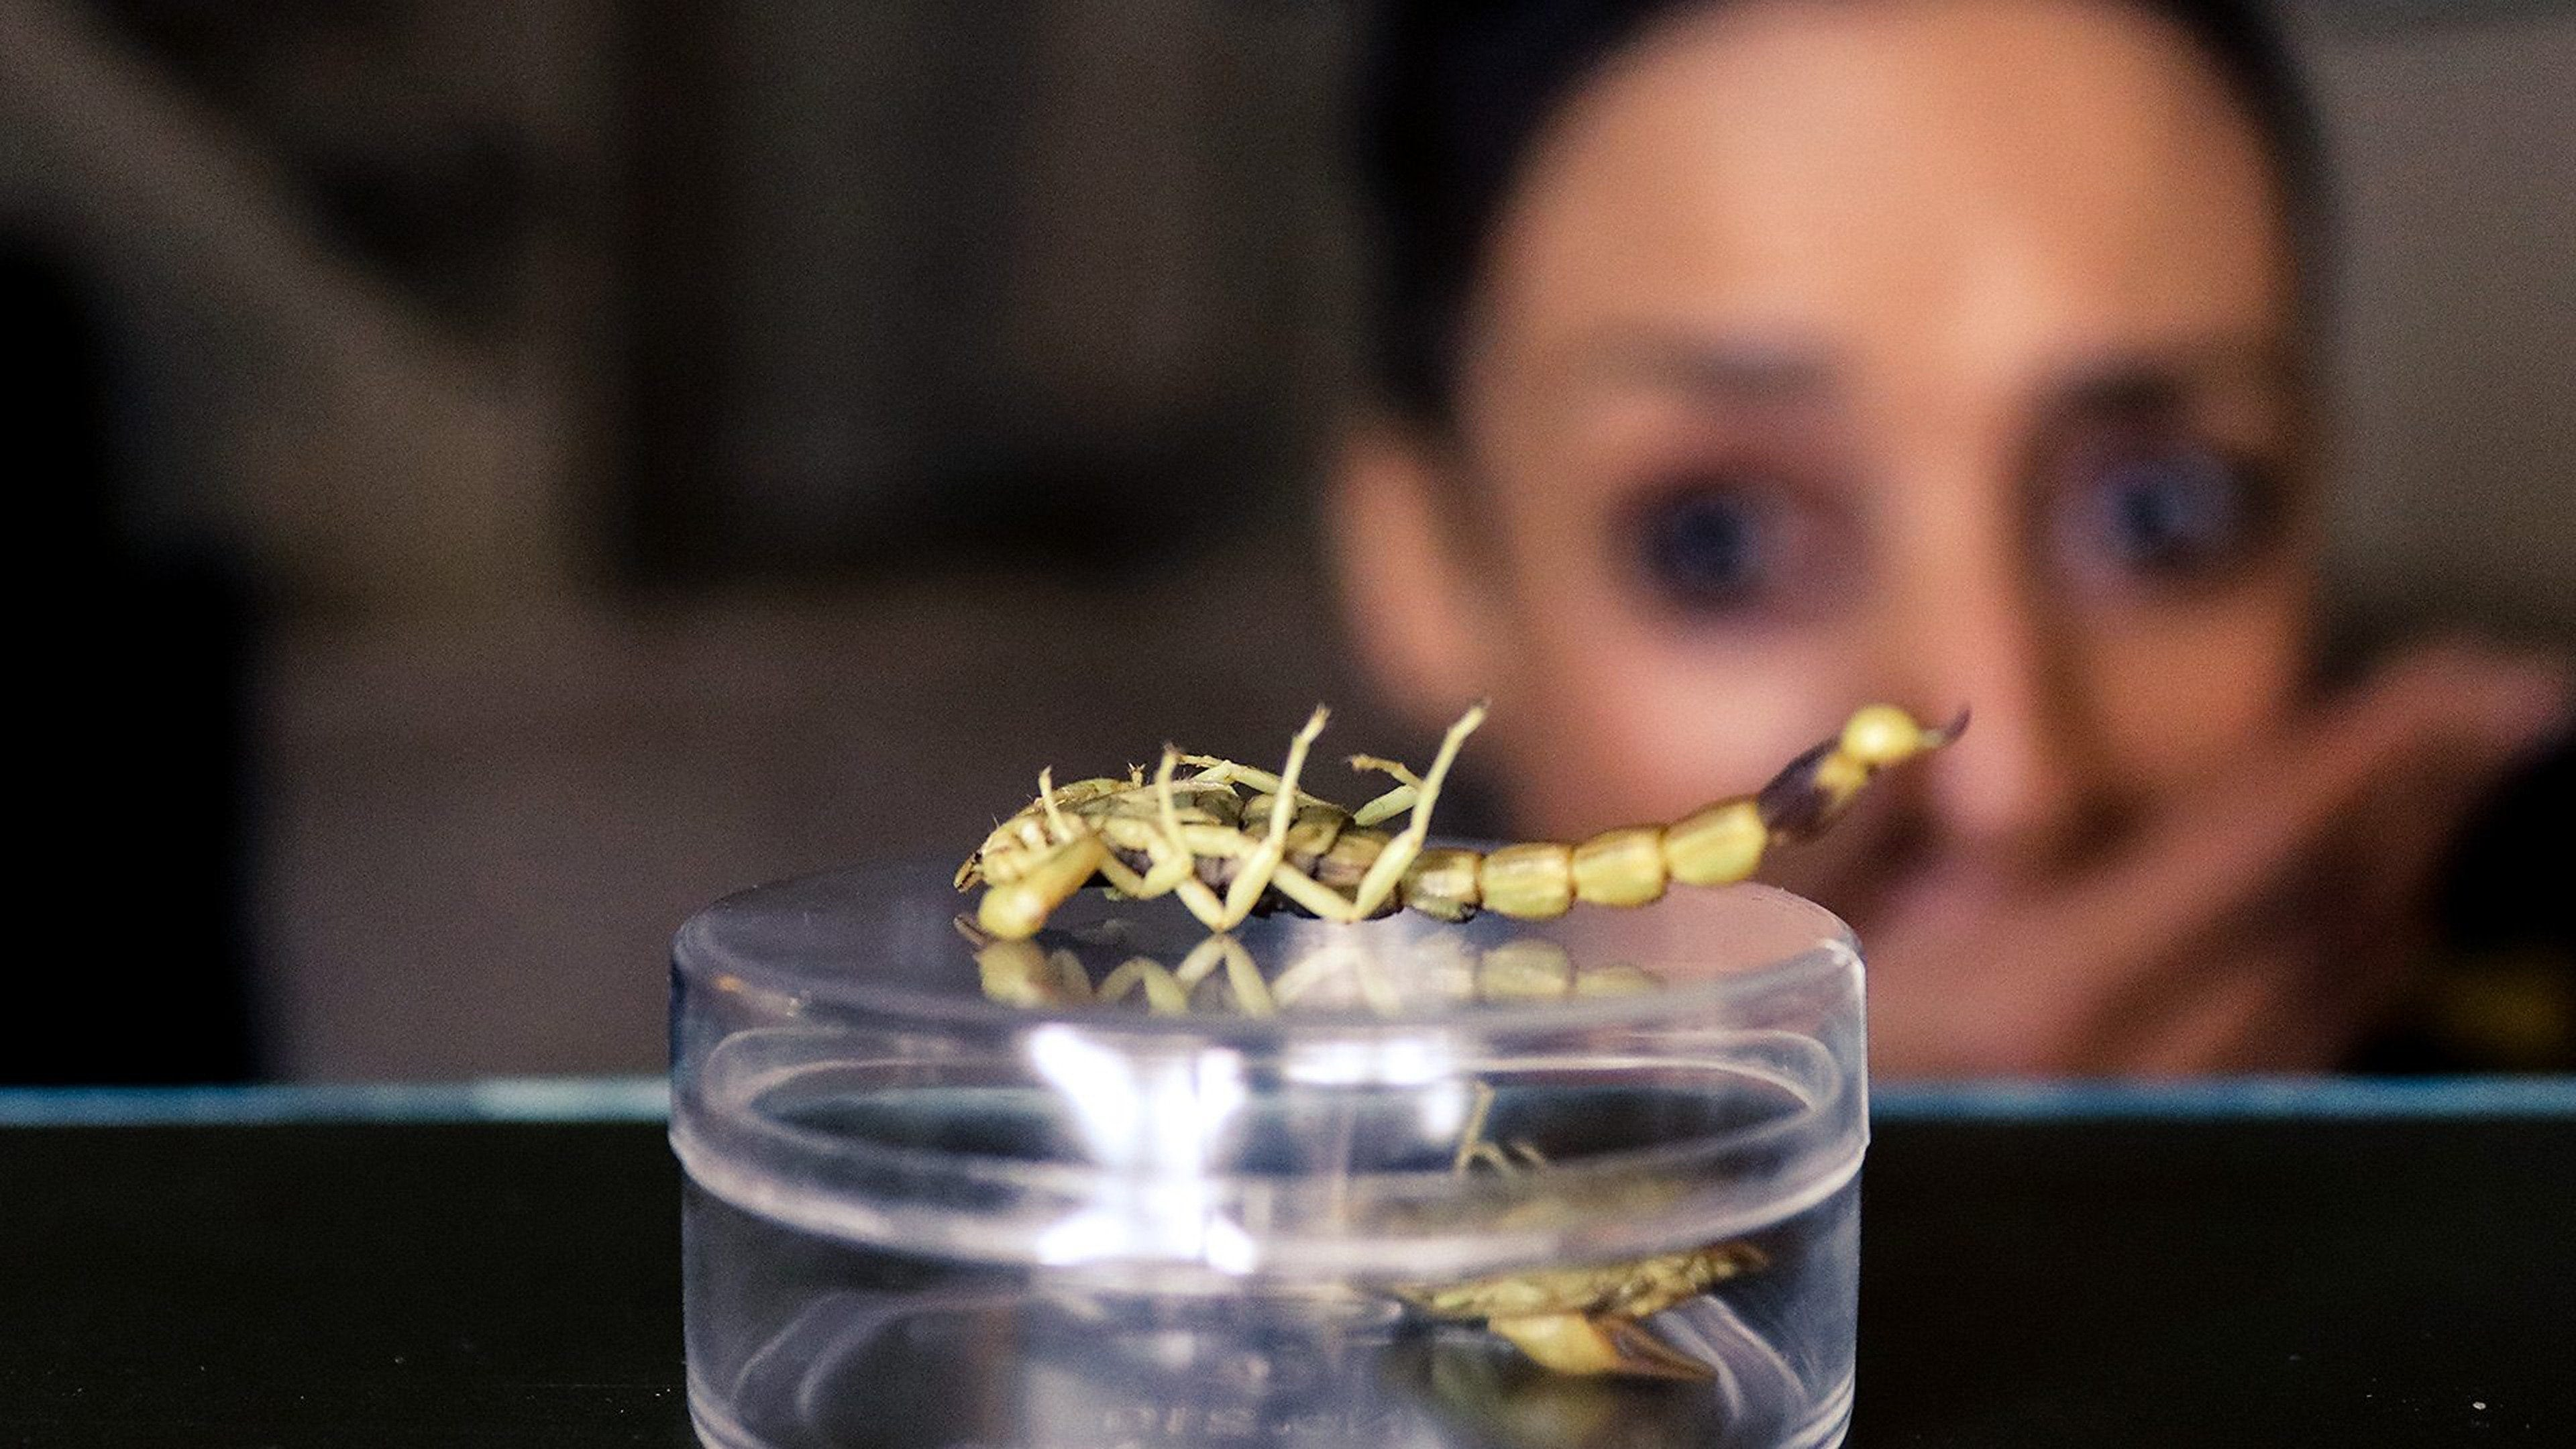 Grubs Up: Would You Eat Insects to Save the Planet?